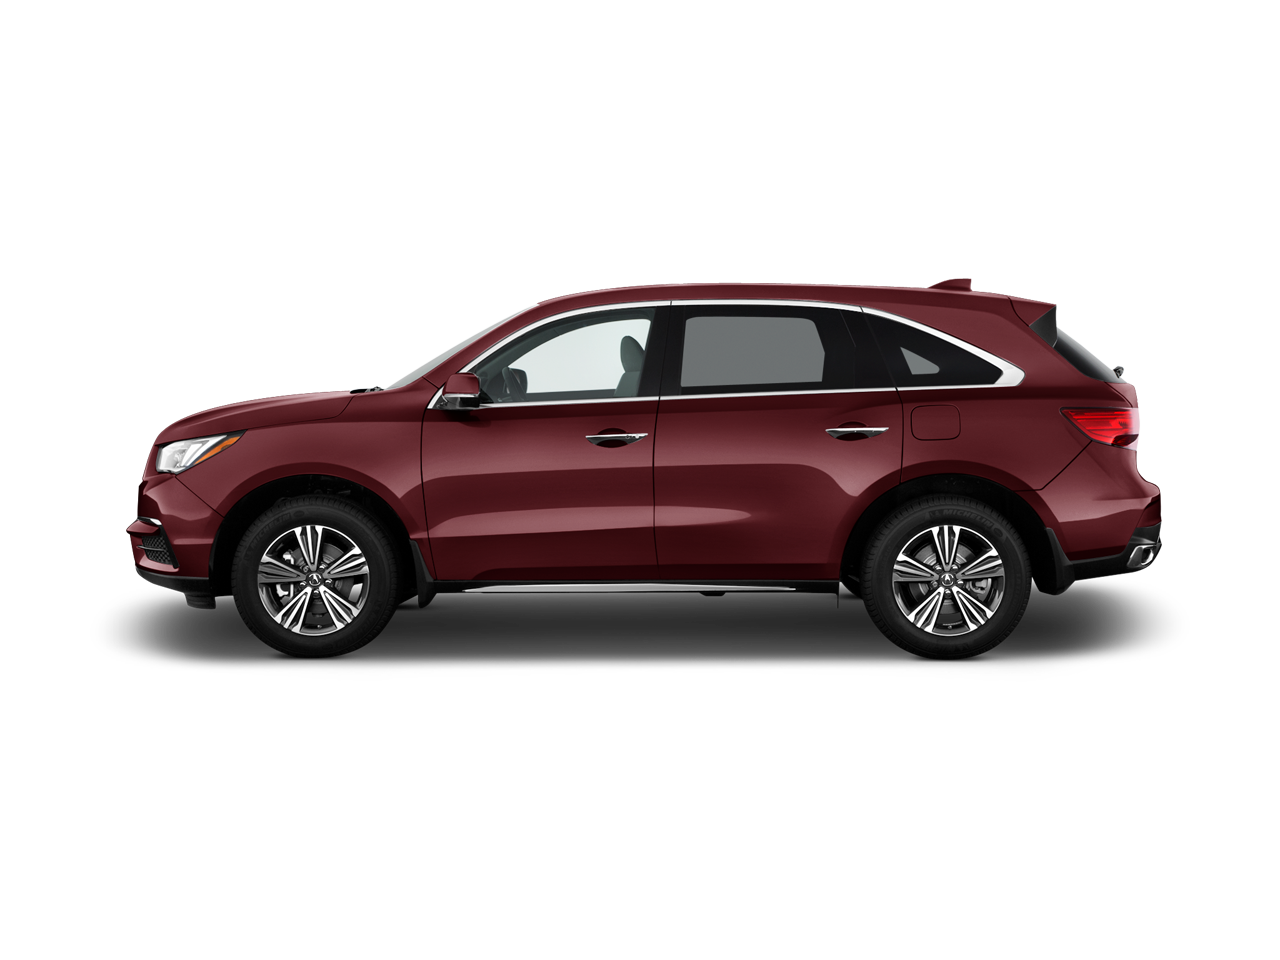 New MDX For Sale In Portland OR Ron Tonkin Acura - Portland acura dealers